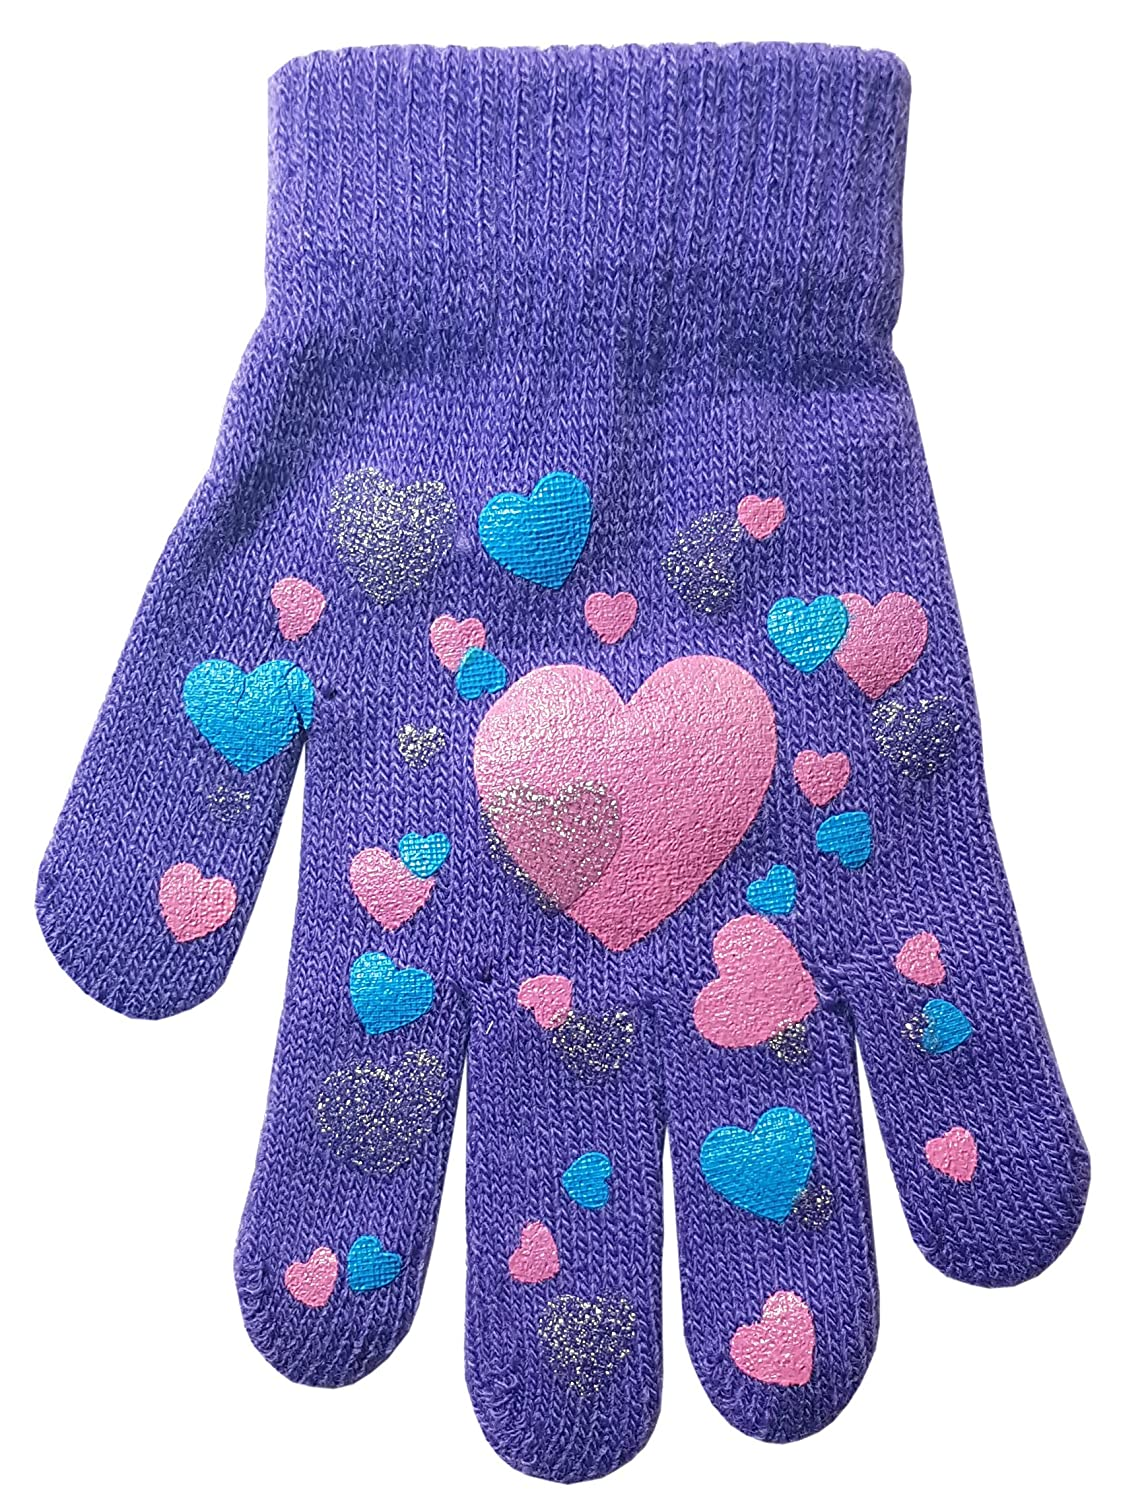 Children's Heart and Butterfly Design Magic Gripper Gloves